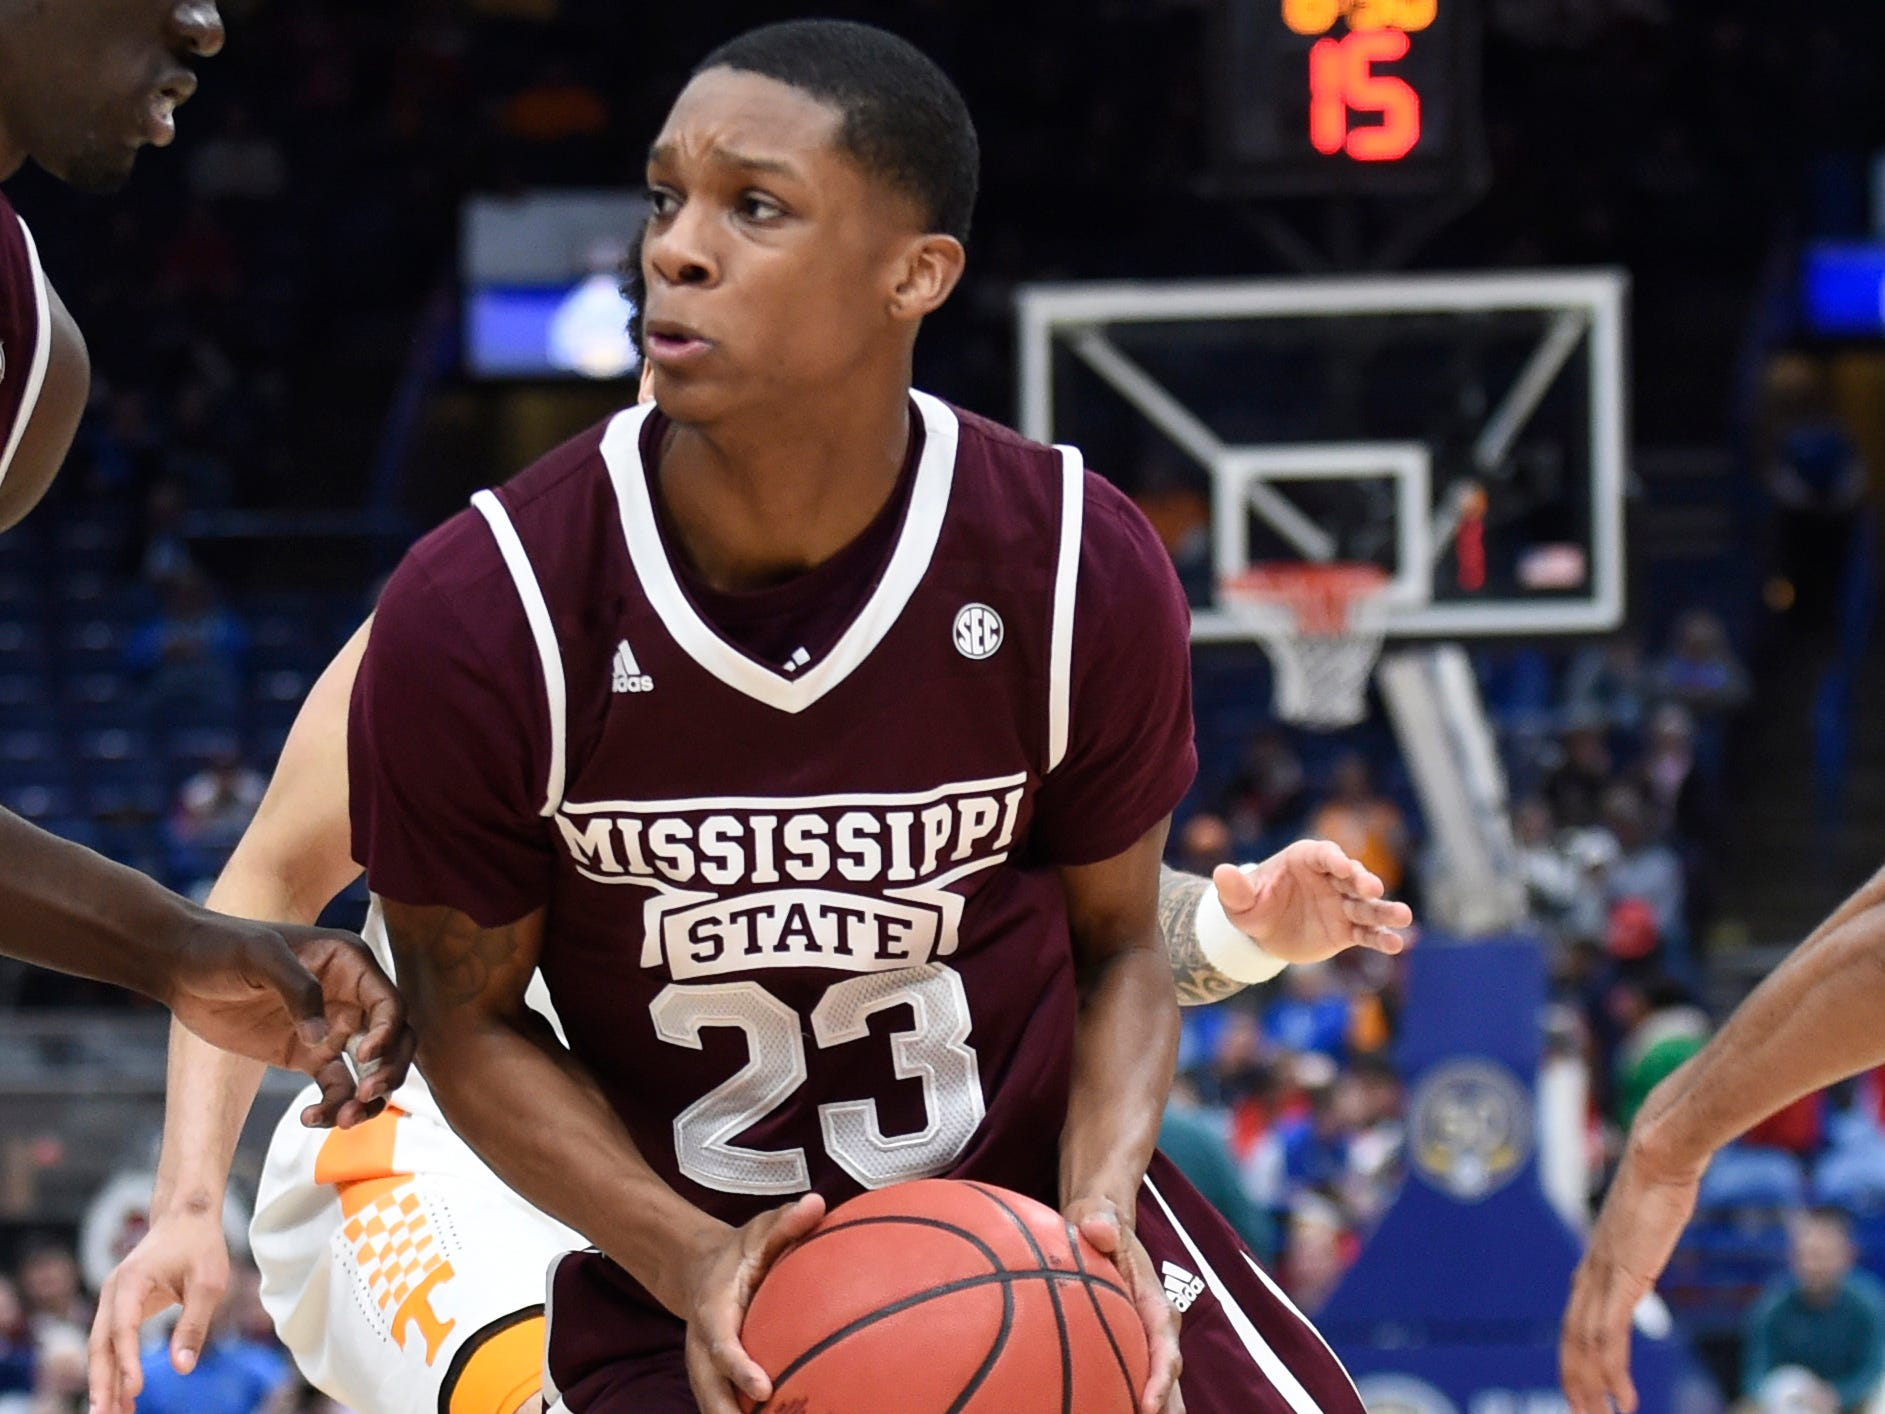 No. 19 Mississippi State (25-12 in 2017-18).